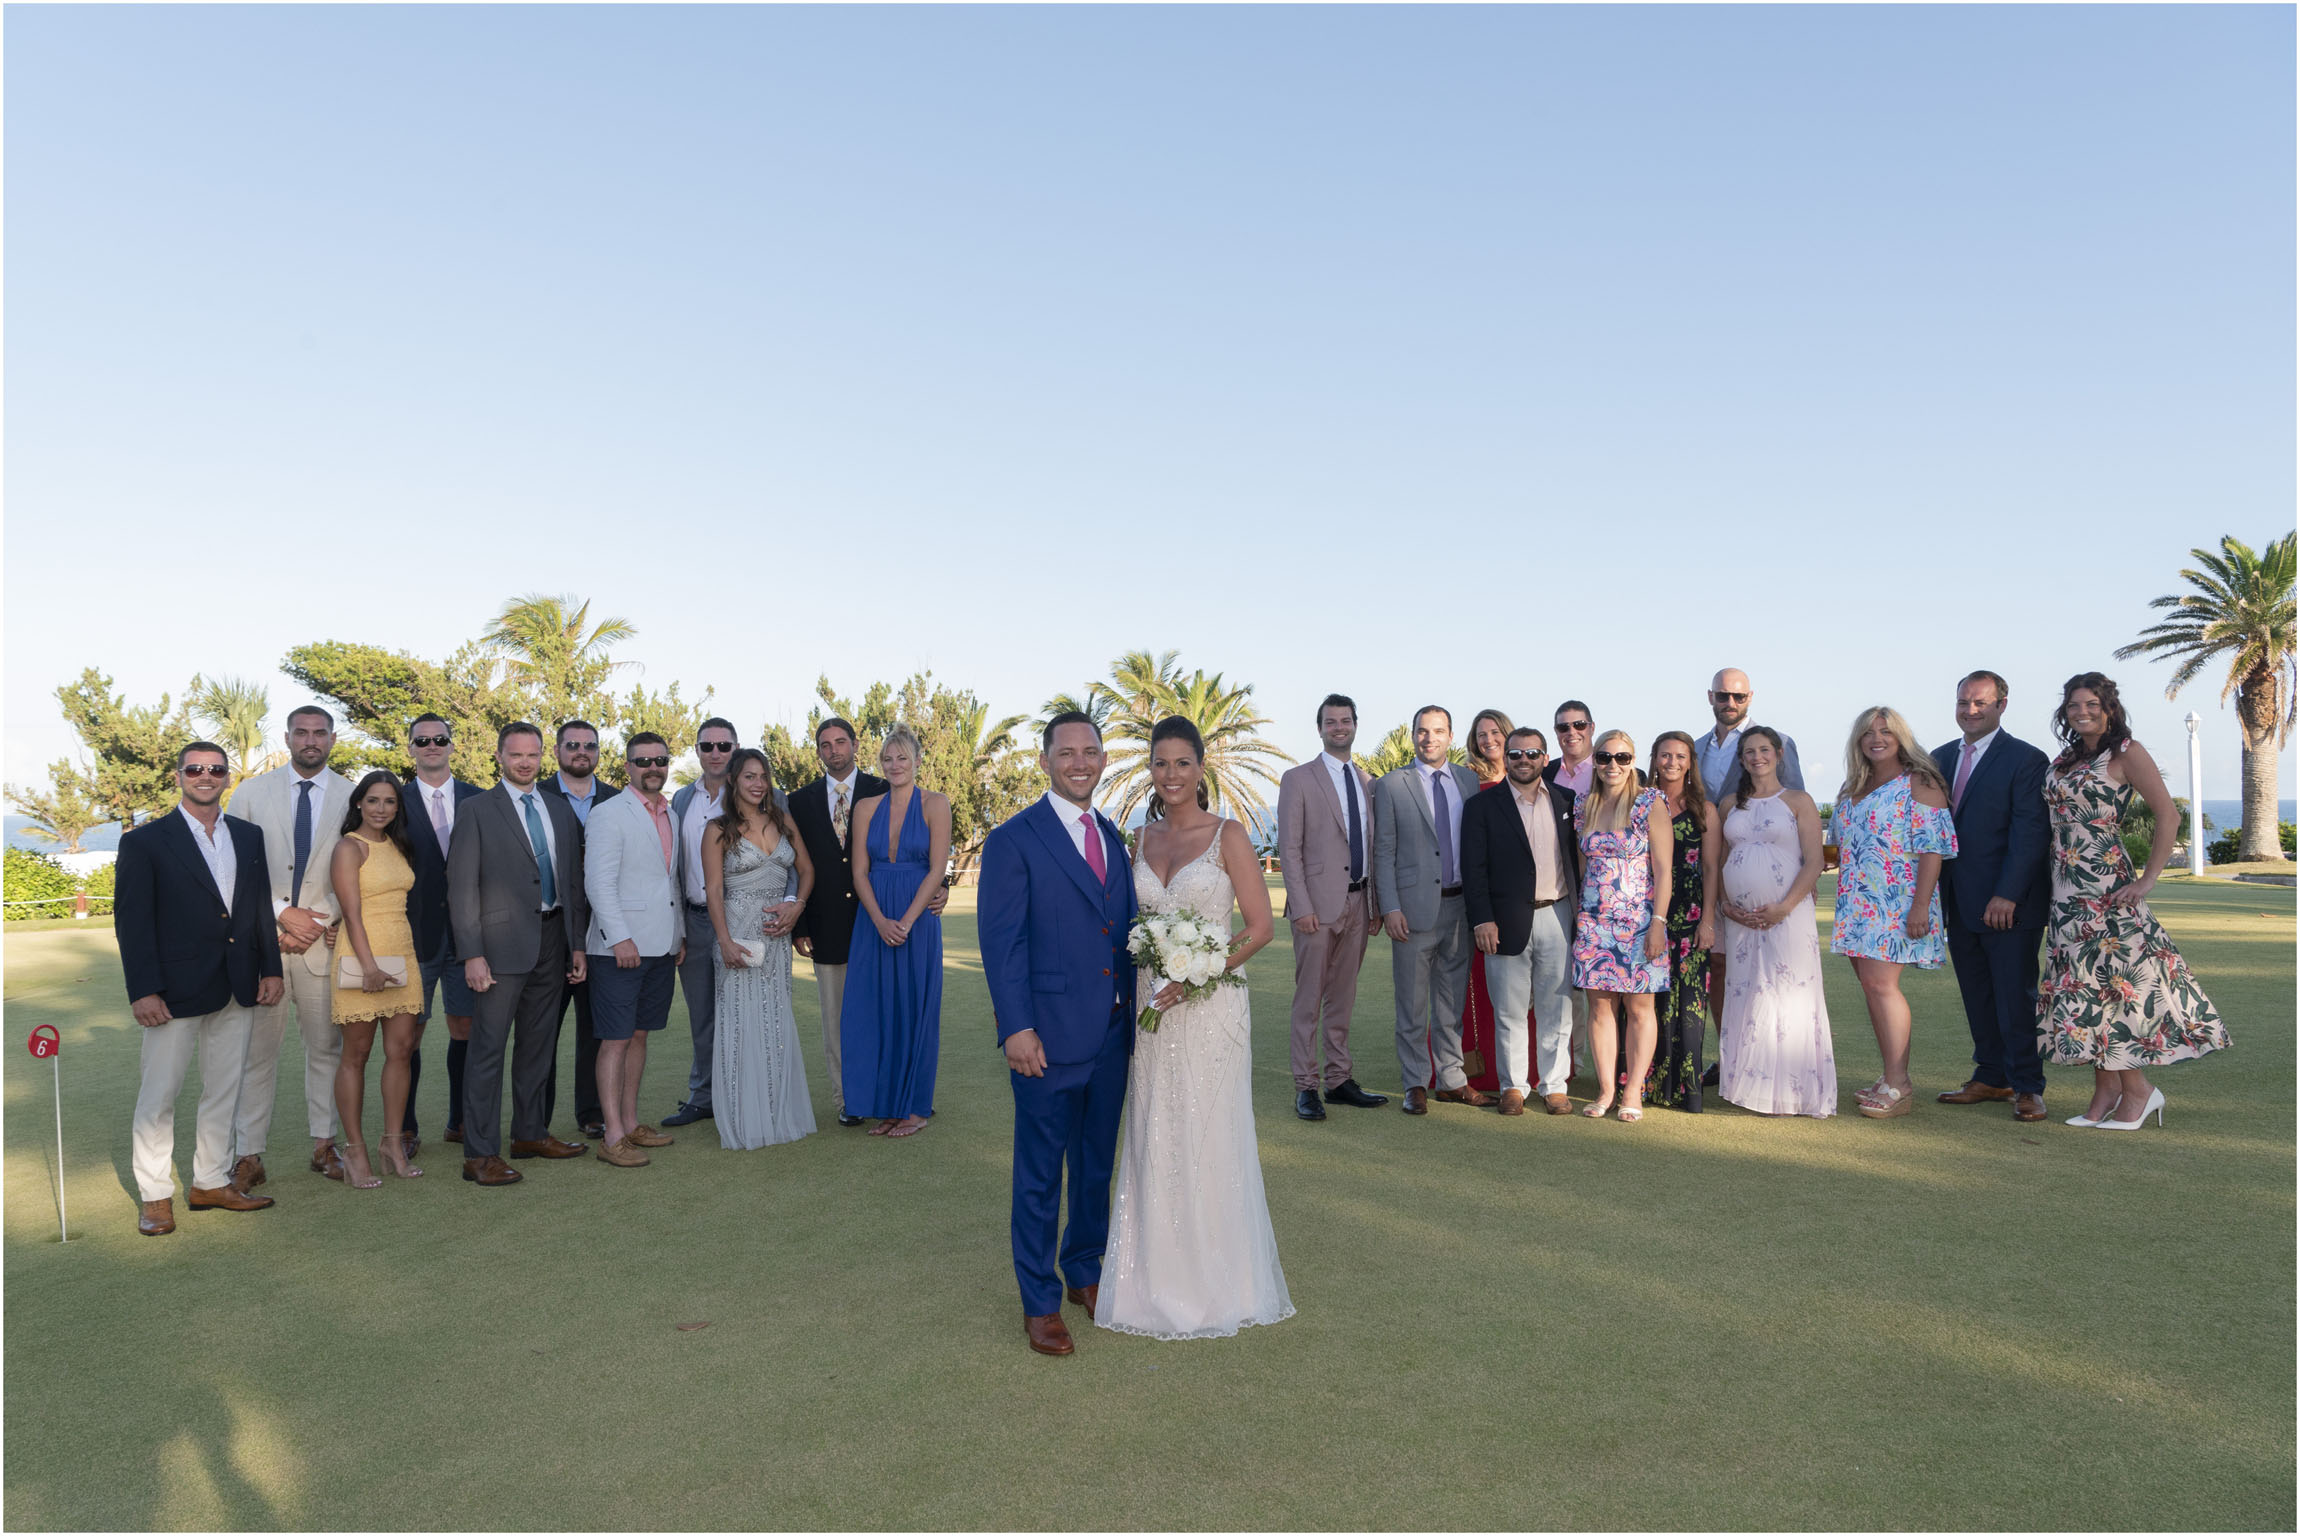 ©FianderFoto_Catherine_Kenny_Coral Beach Wedding_001.jpg